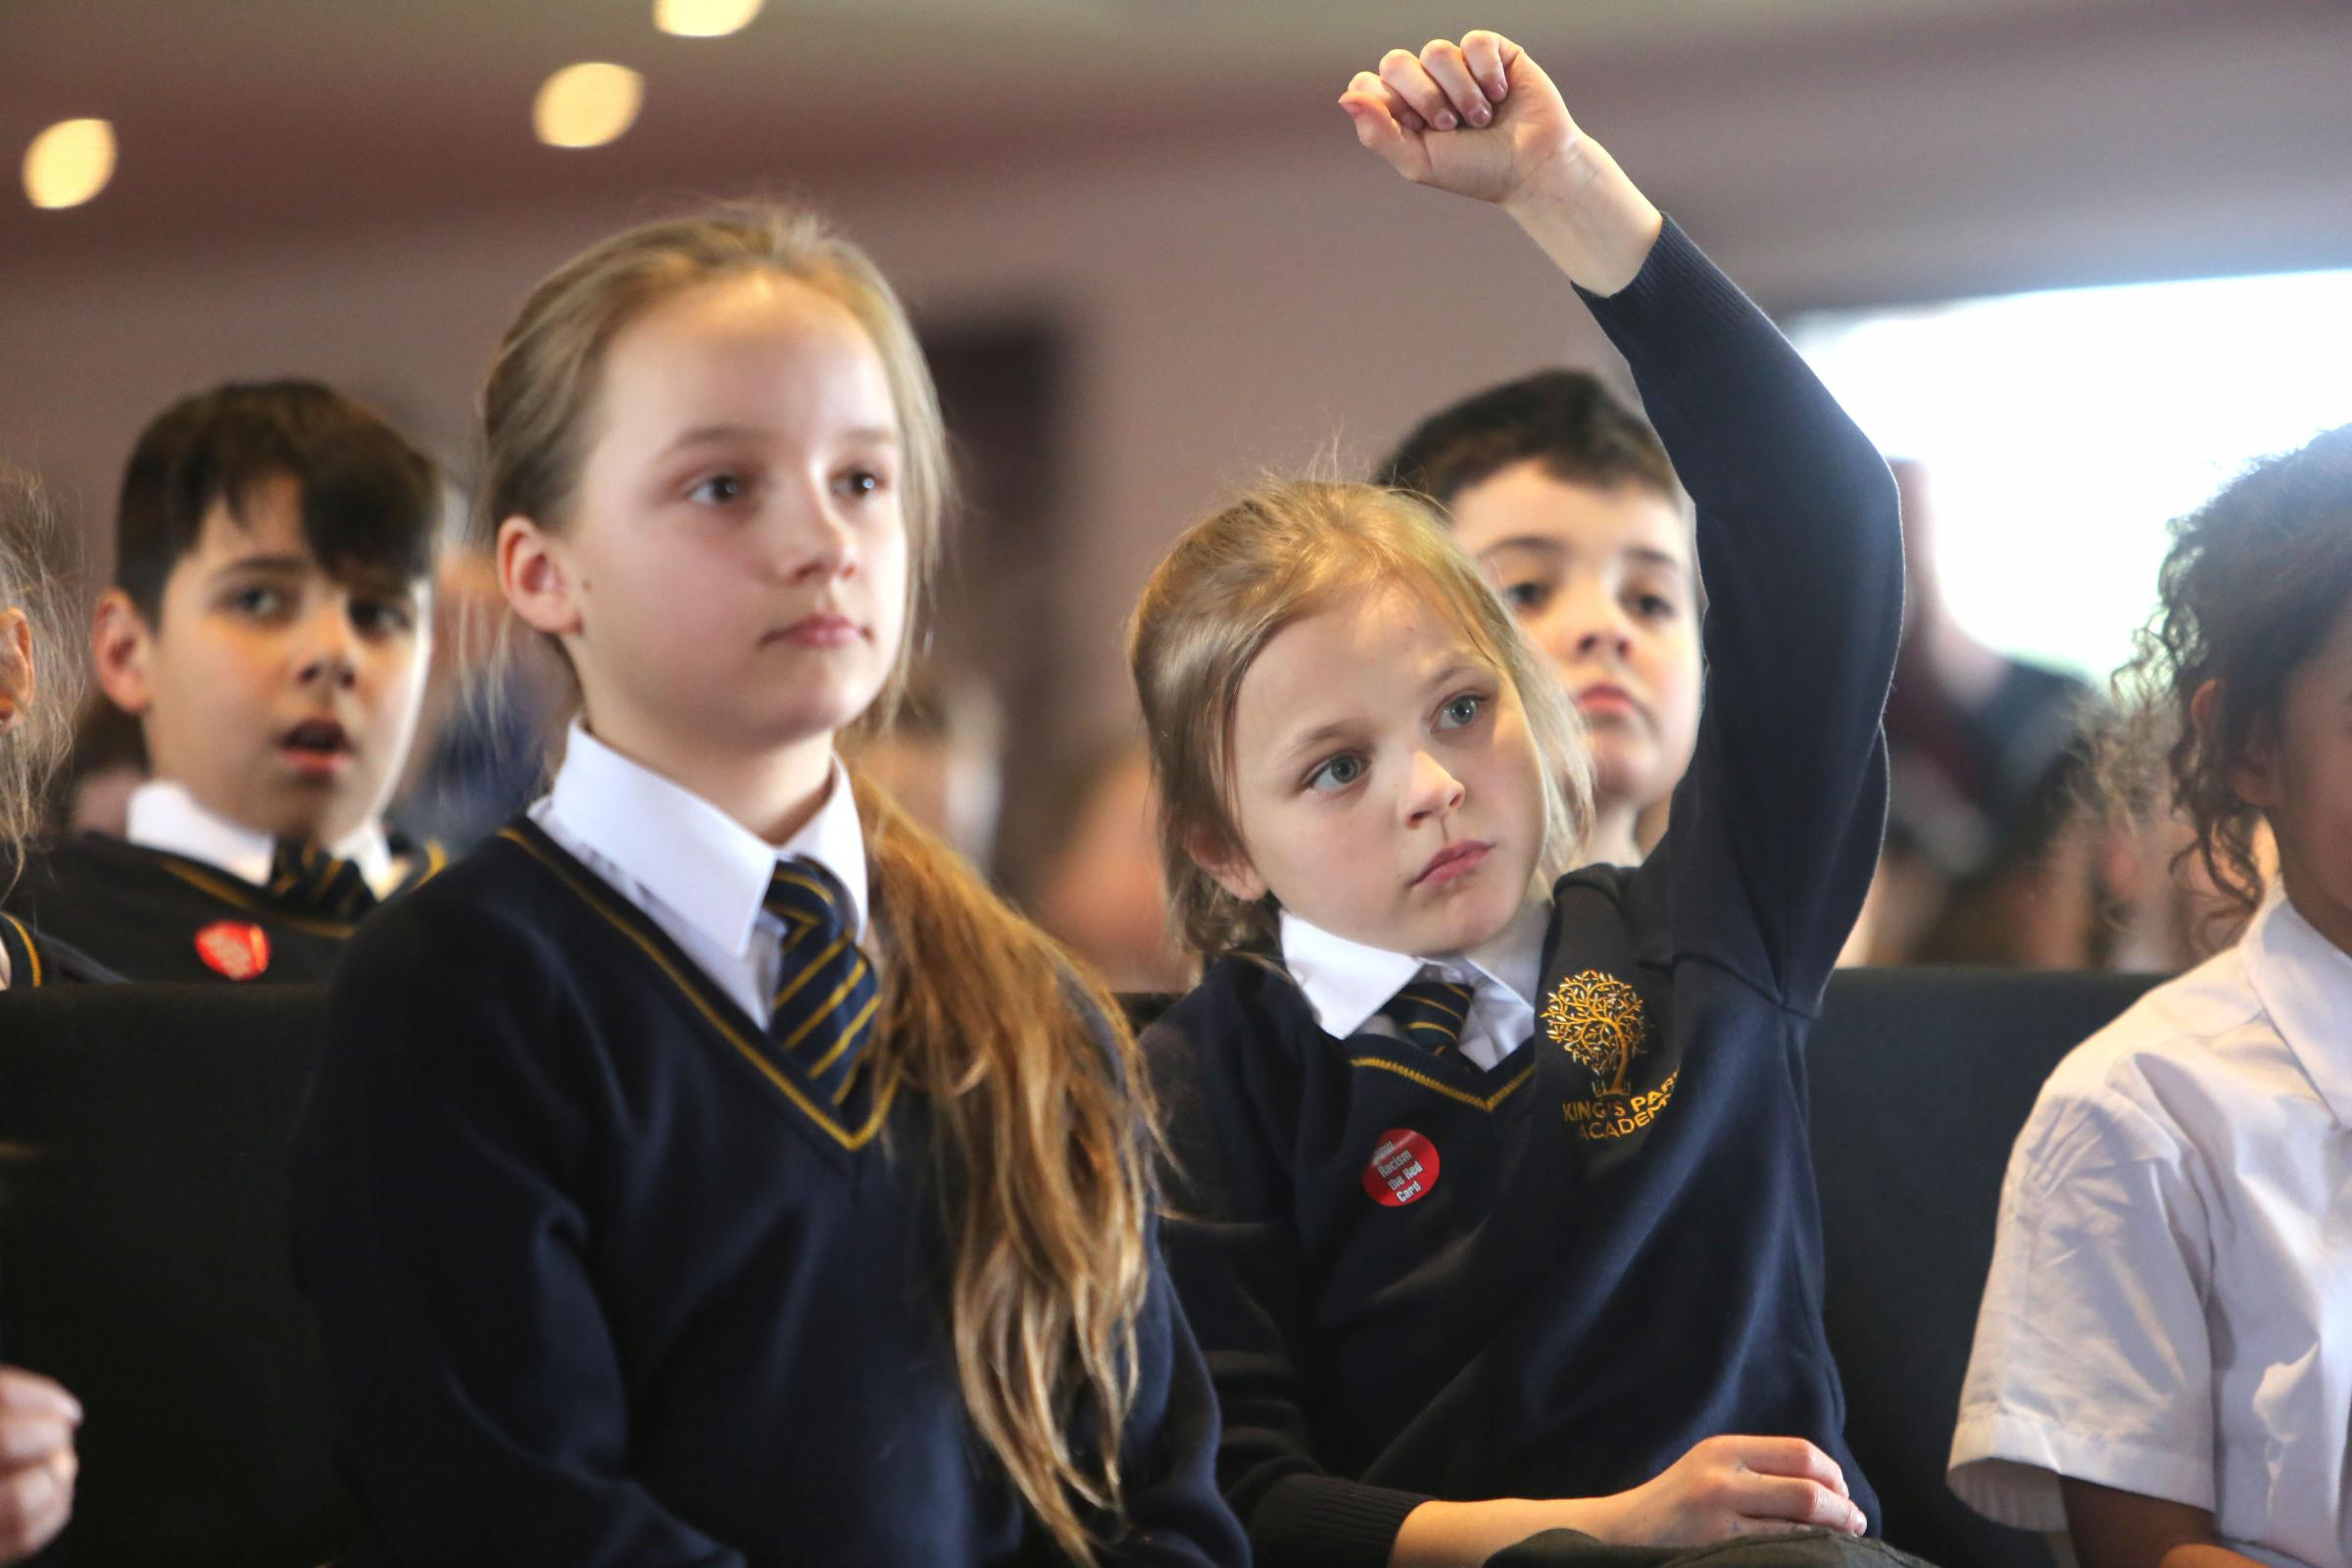 aaf593e900 Liberal Democrats support motion for gender neutral school uniforms in all  schools